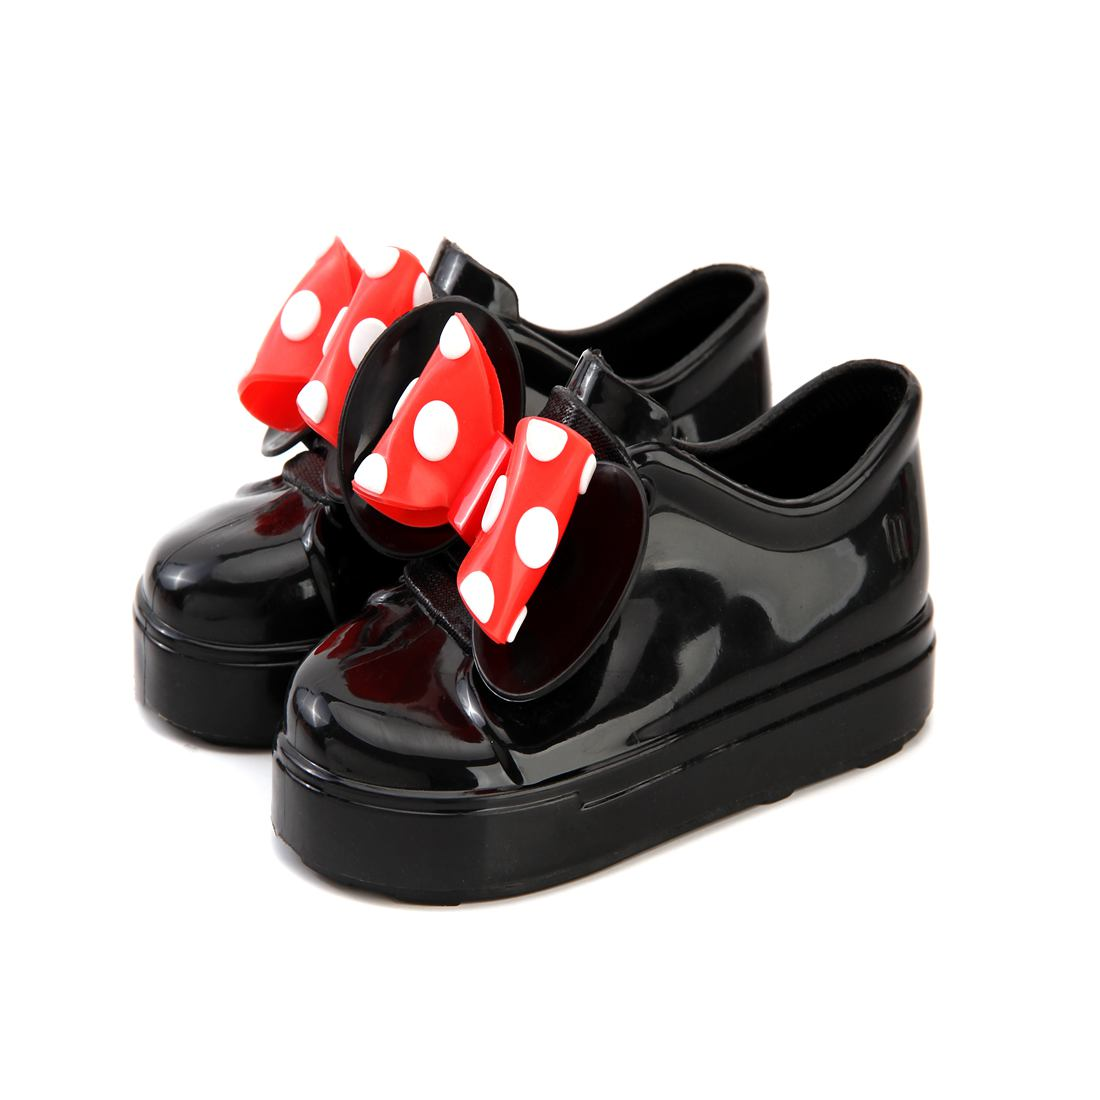 Mini Melissa Girls Shoes 2018 New Summer Wave Point 2 Layer Bow Flat Slip-on Kids Sandals Jelly Sports Baby Shoelace